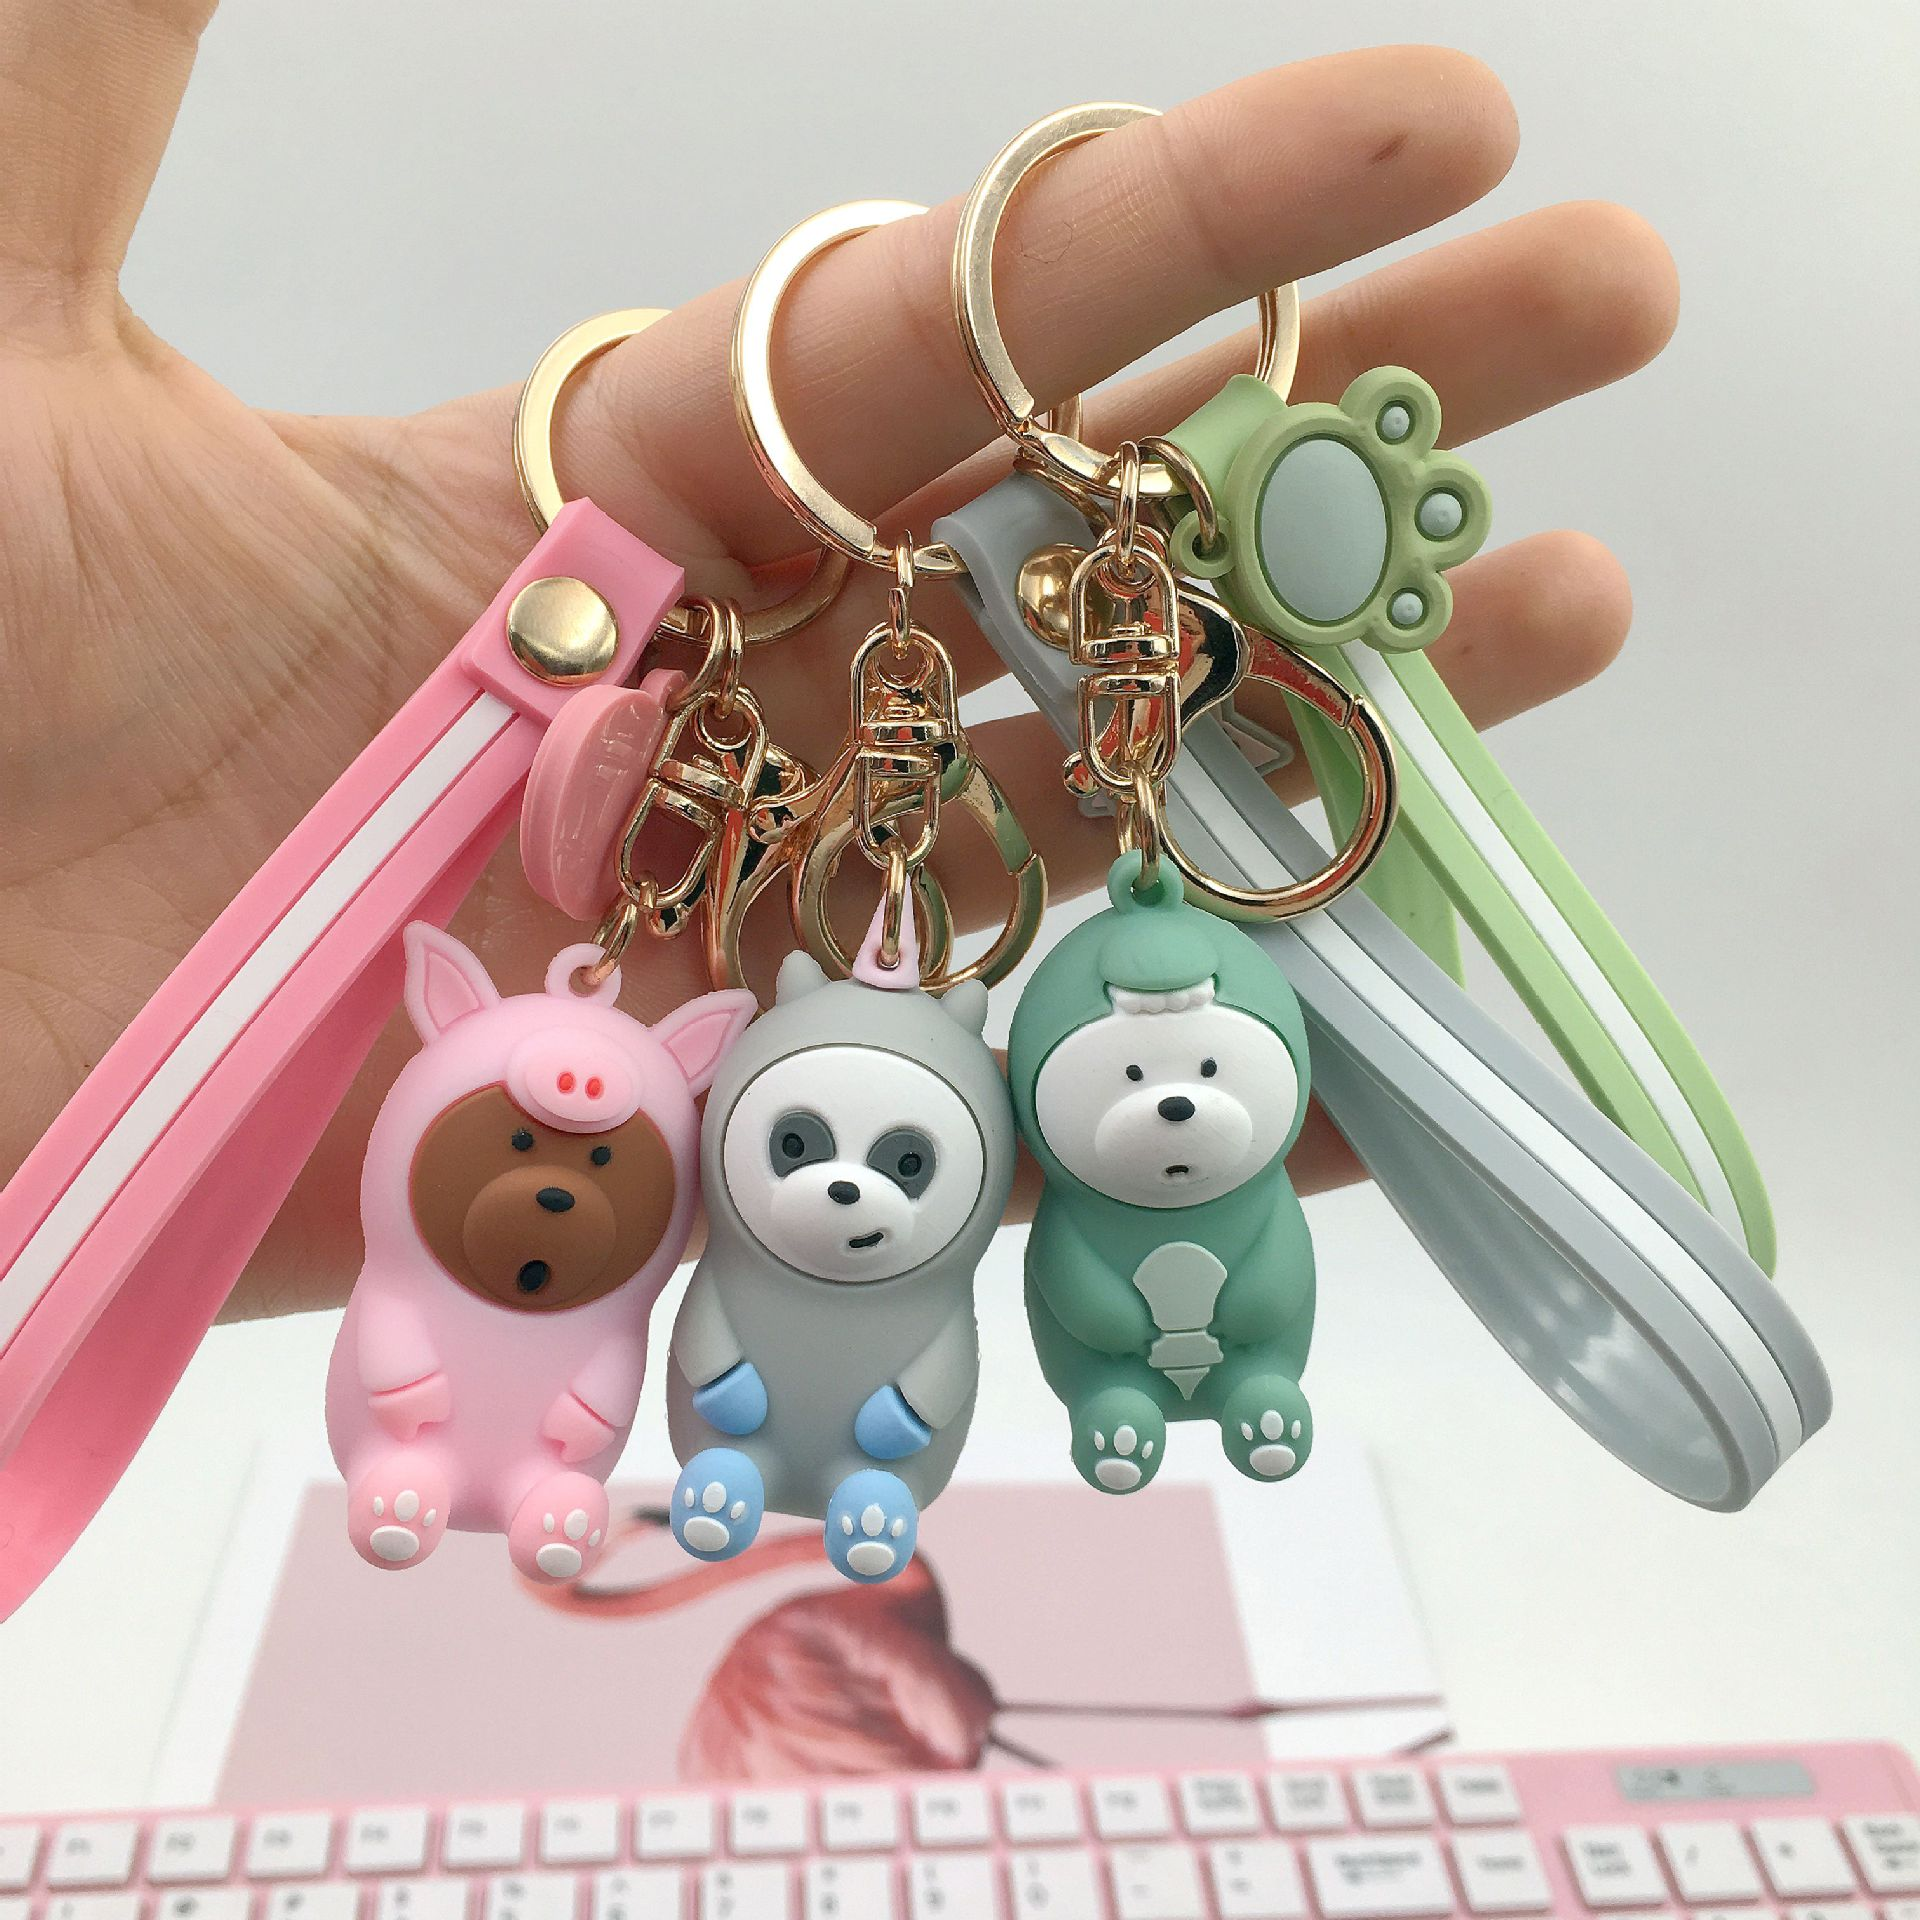 Our Naked Bear Cute Doll Keychain Three Cute Bear Keychain Keyring Car Women's Bag Pendant Jewelry Children's Gift